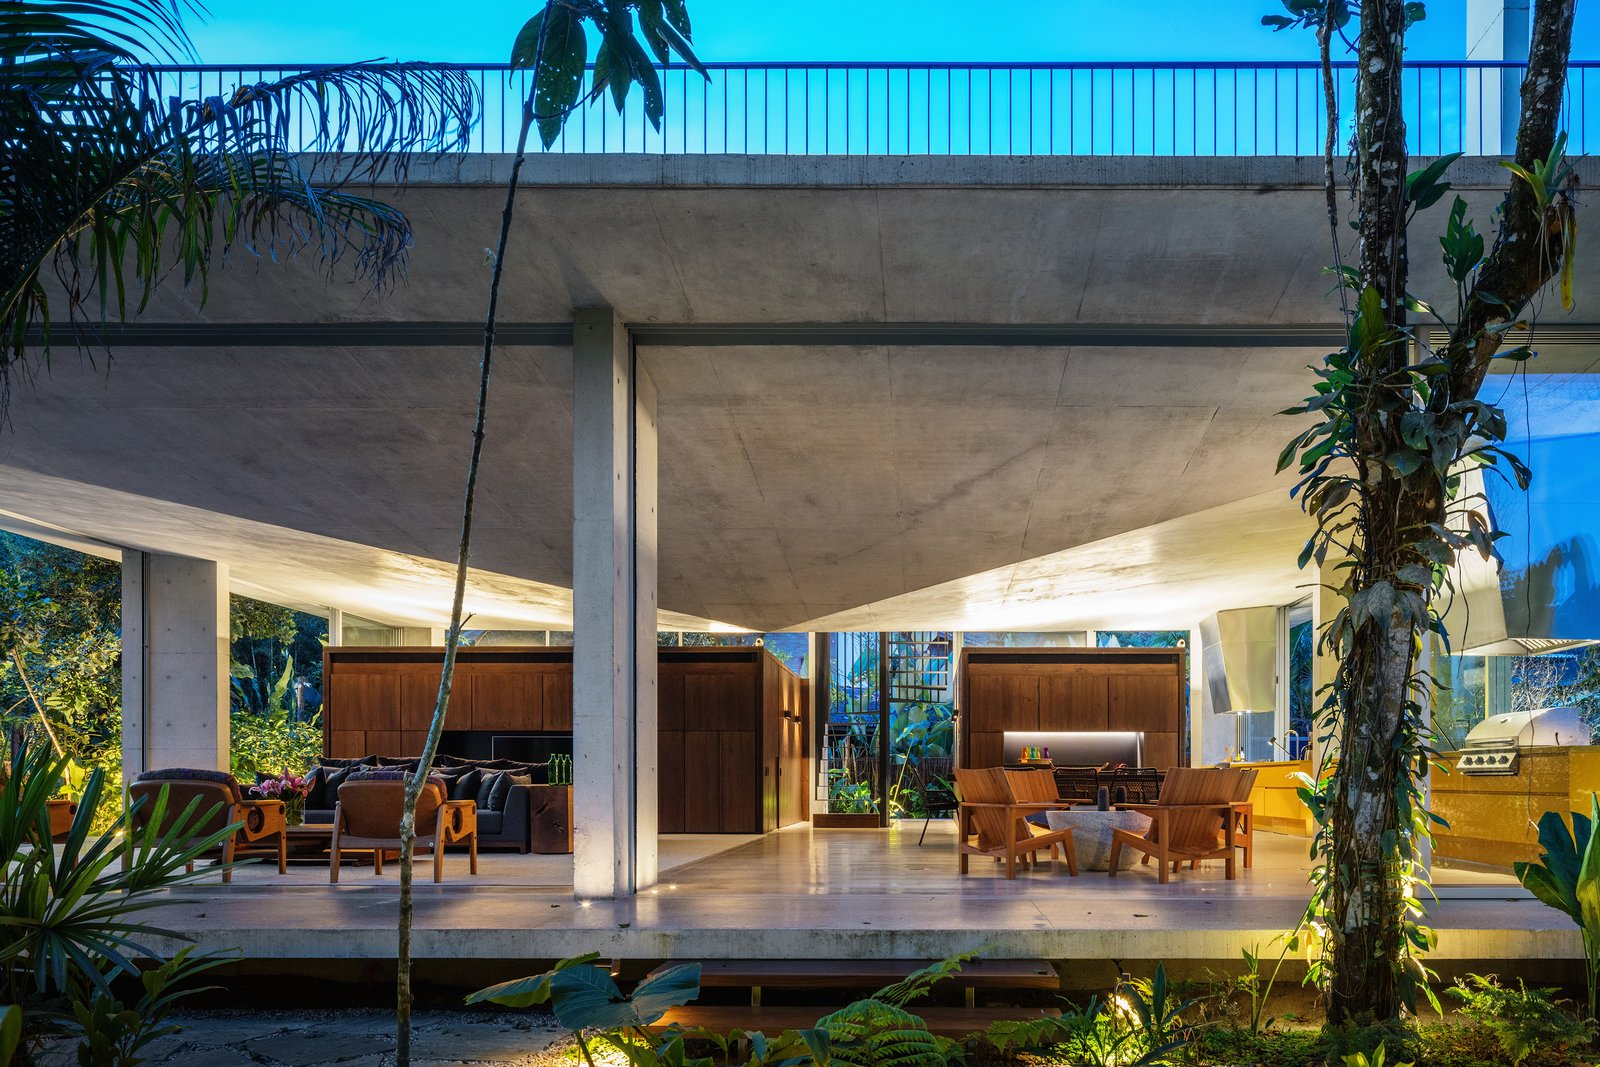 Residência Itamambuca - contemporary house in the jungle - living room outside view